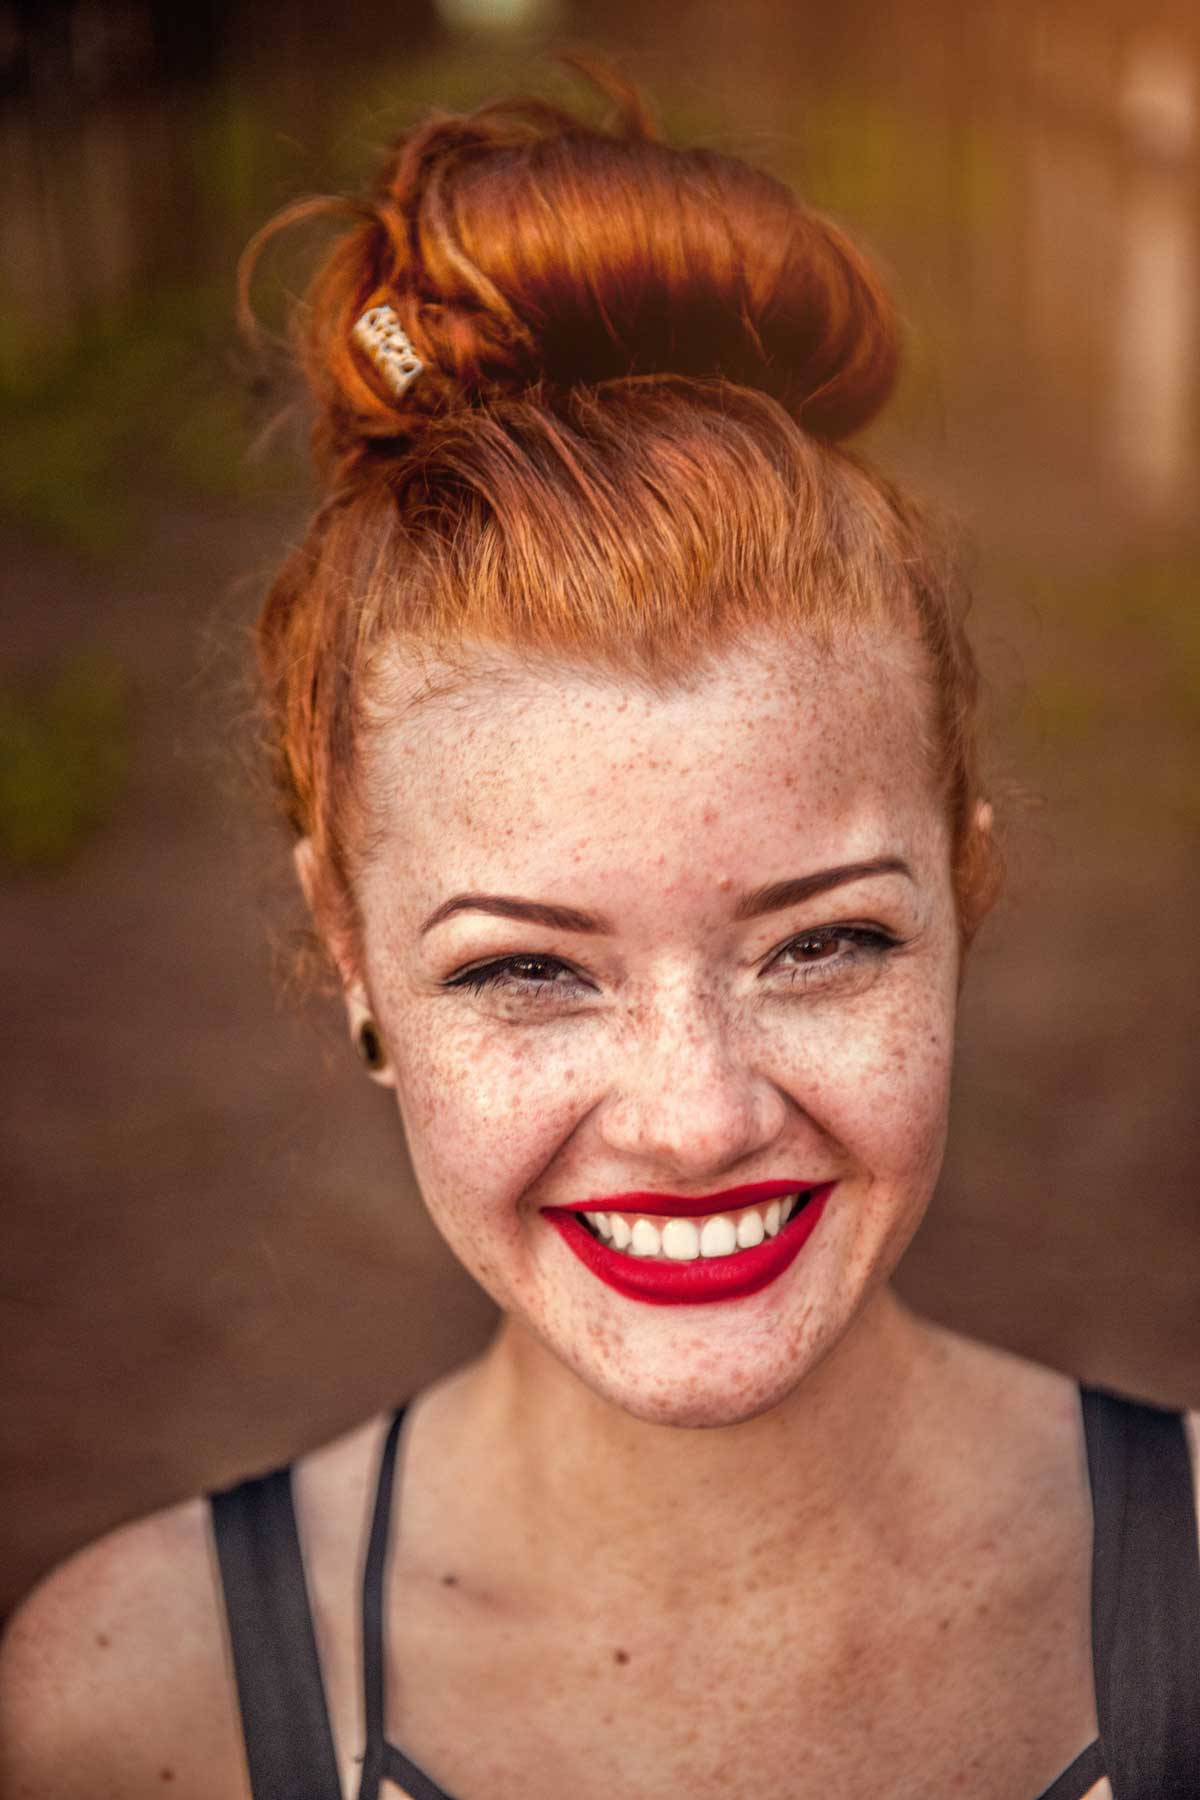 controlling food - image of woman from shoulders up, smiling directly into the camera; she has red hair piled into a bun on top of her face and her skin is covered in freckles